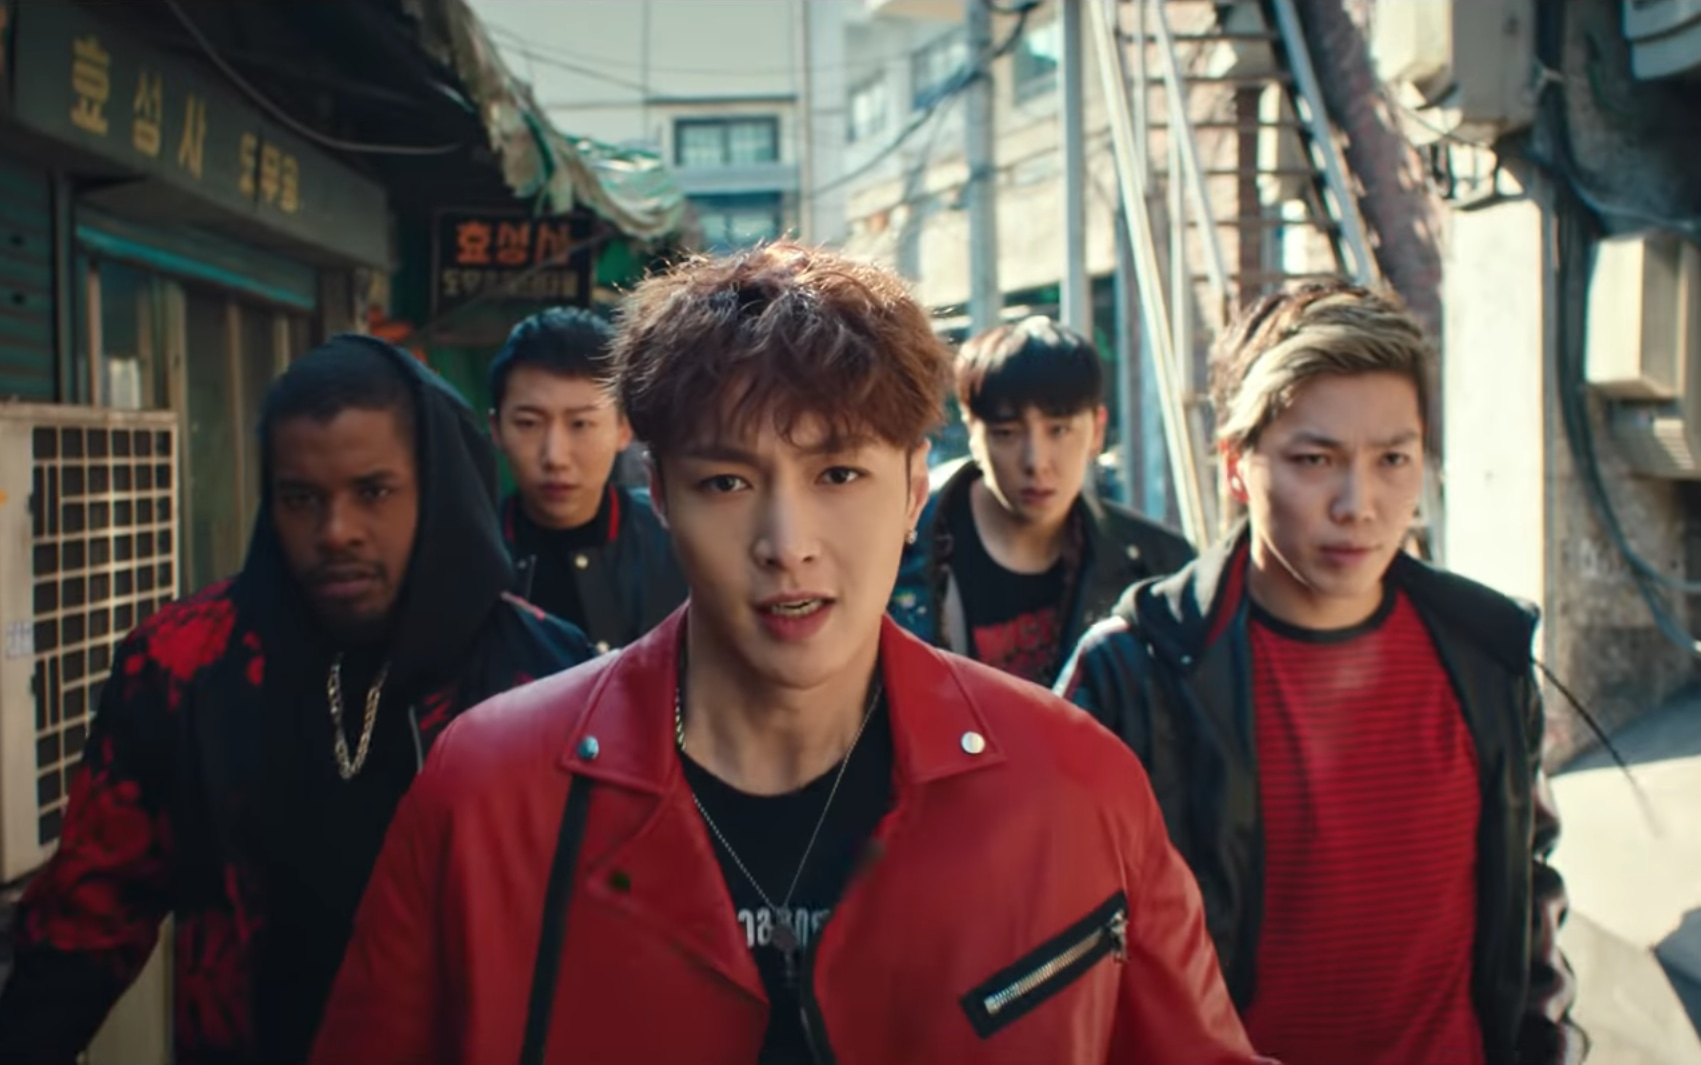 Jason Derulo, LAY, NCT 127, Let's Shut up And Dance